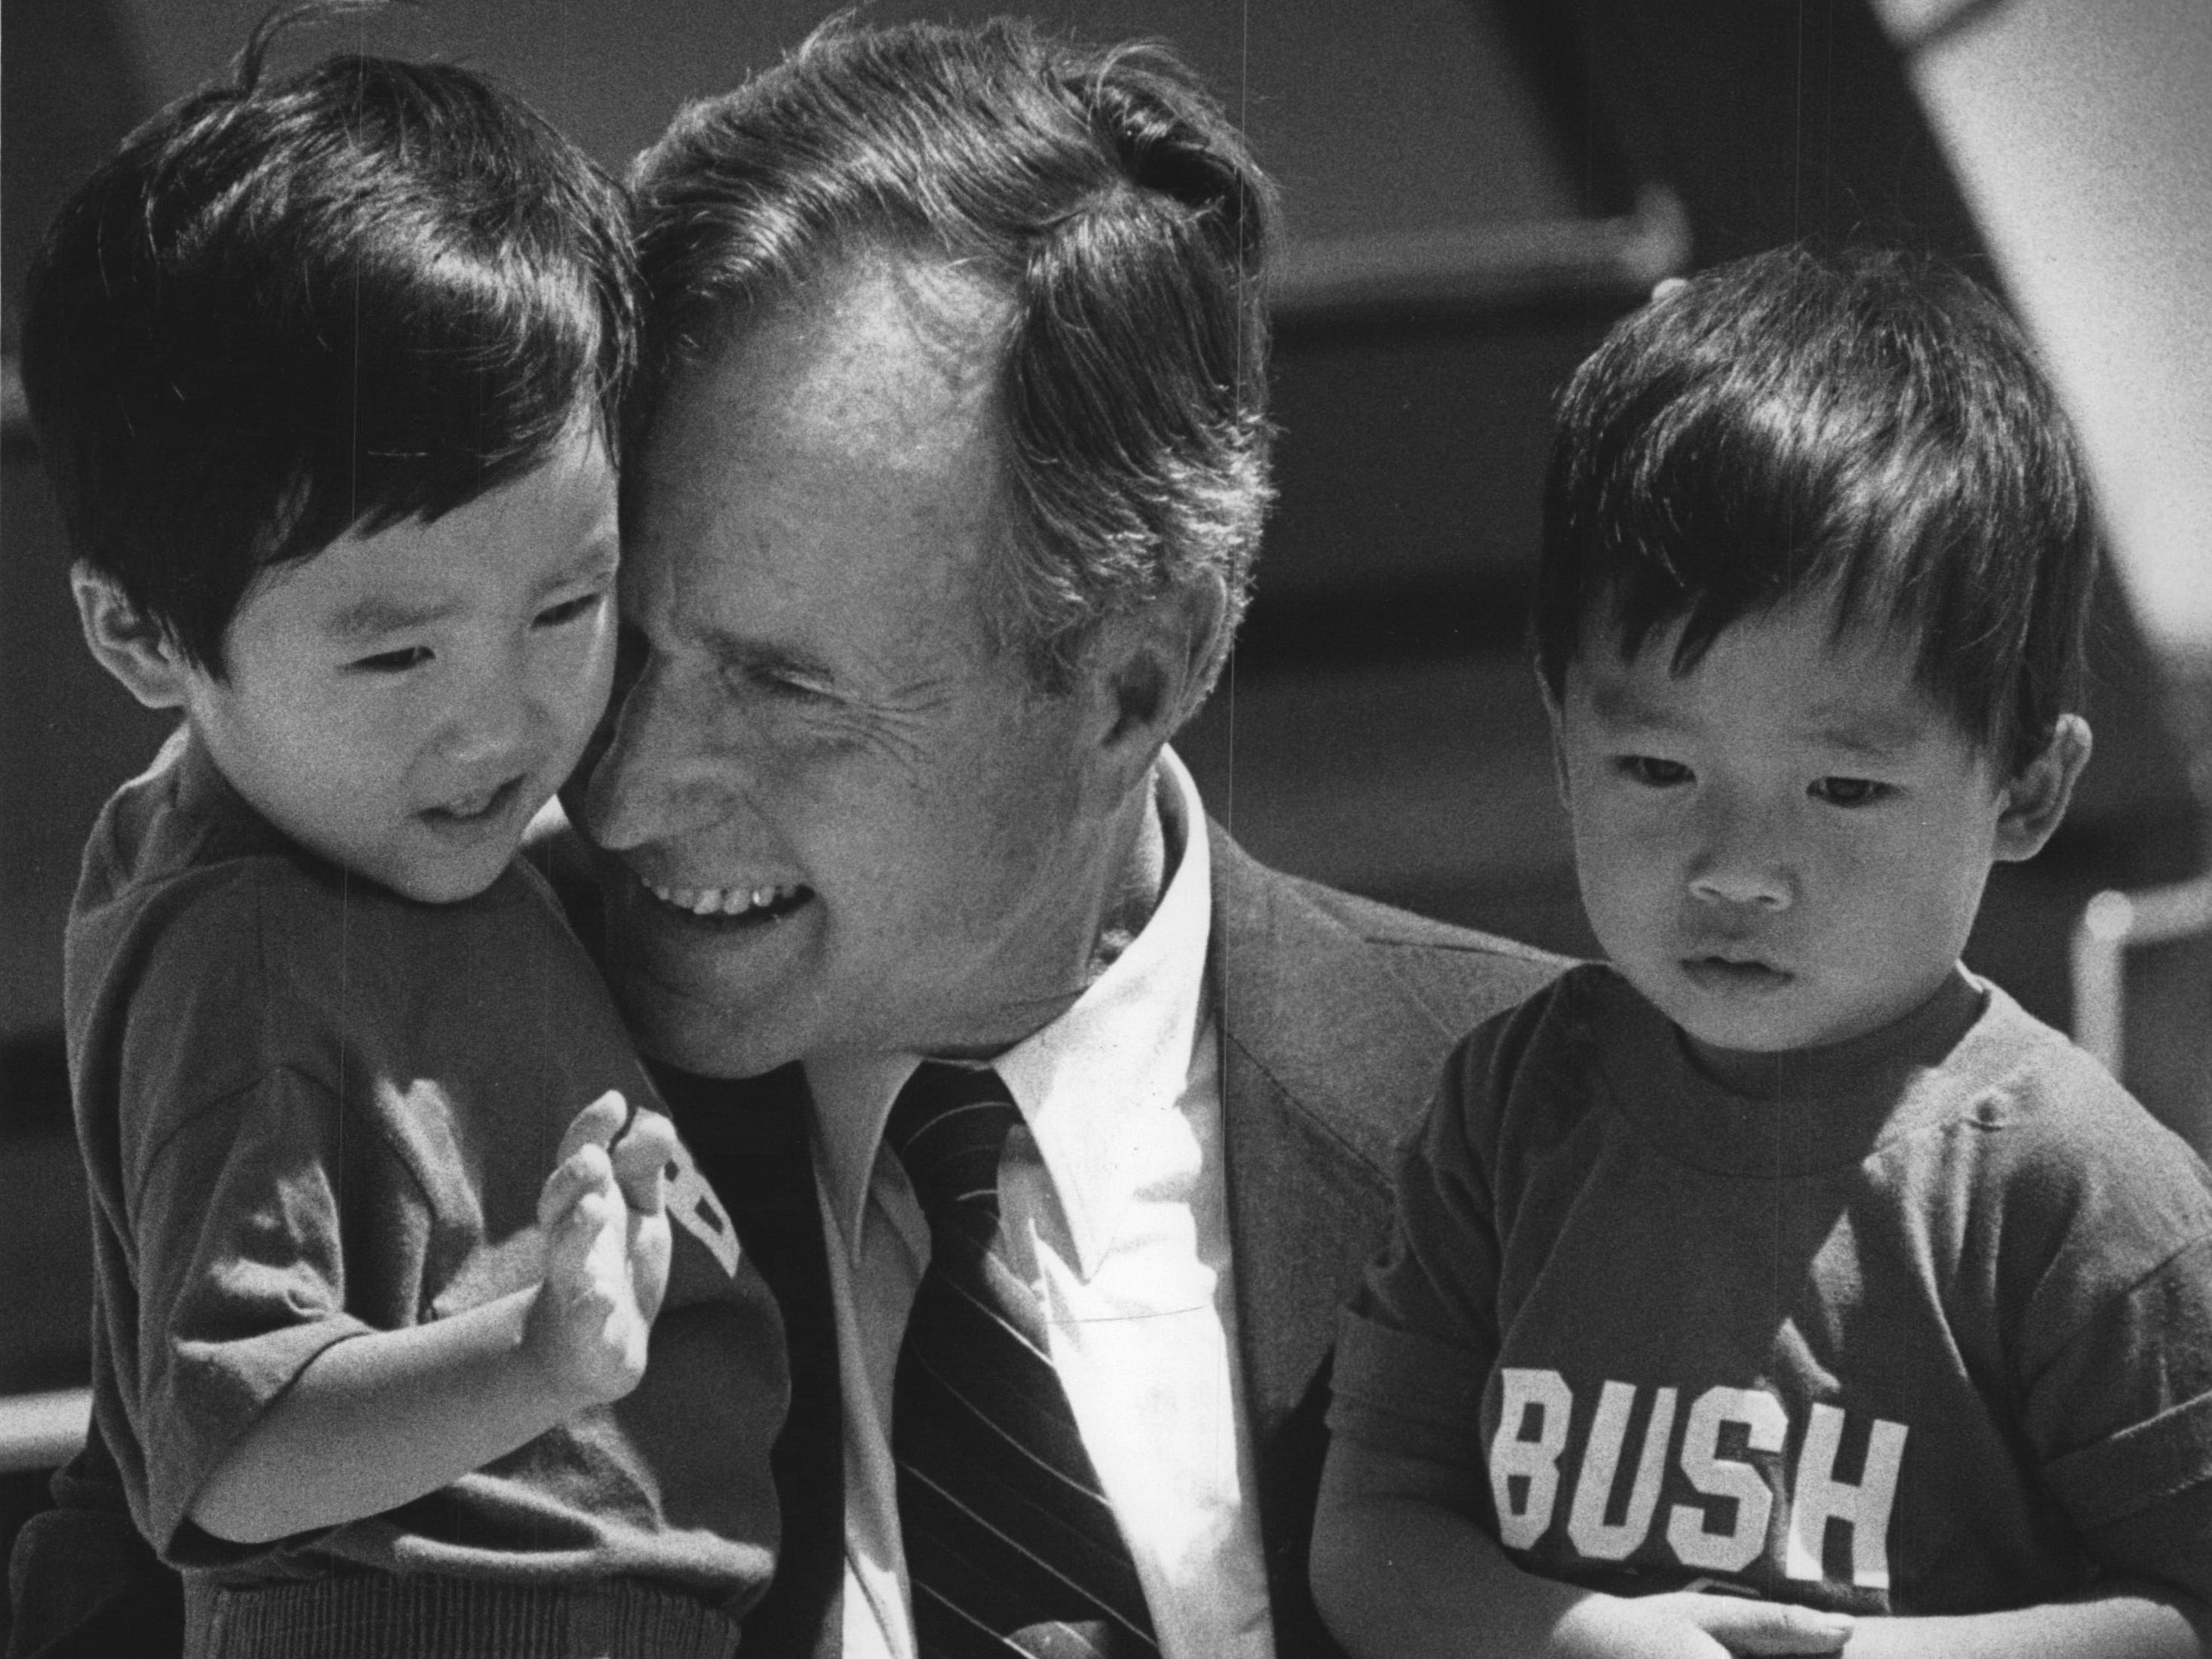 Vice President George Bush holds twins Christopher and Joshua Block, children of Janelle and Mark Block of New Berlin, before departing from Mitchell International Airport in 1988 after a five-hour campaign visit that included a stop at Festa Italiana.